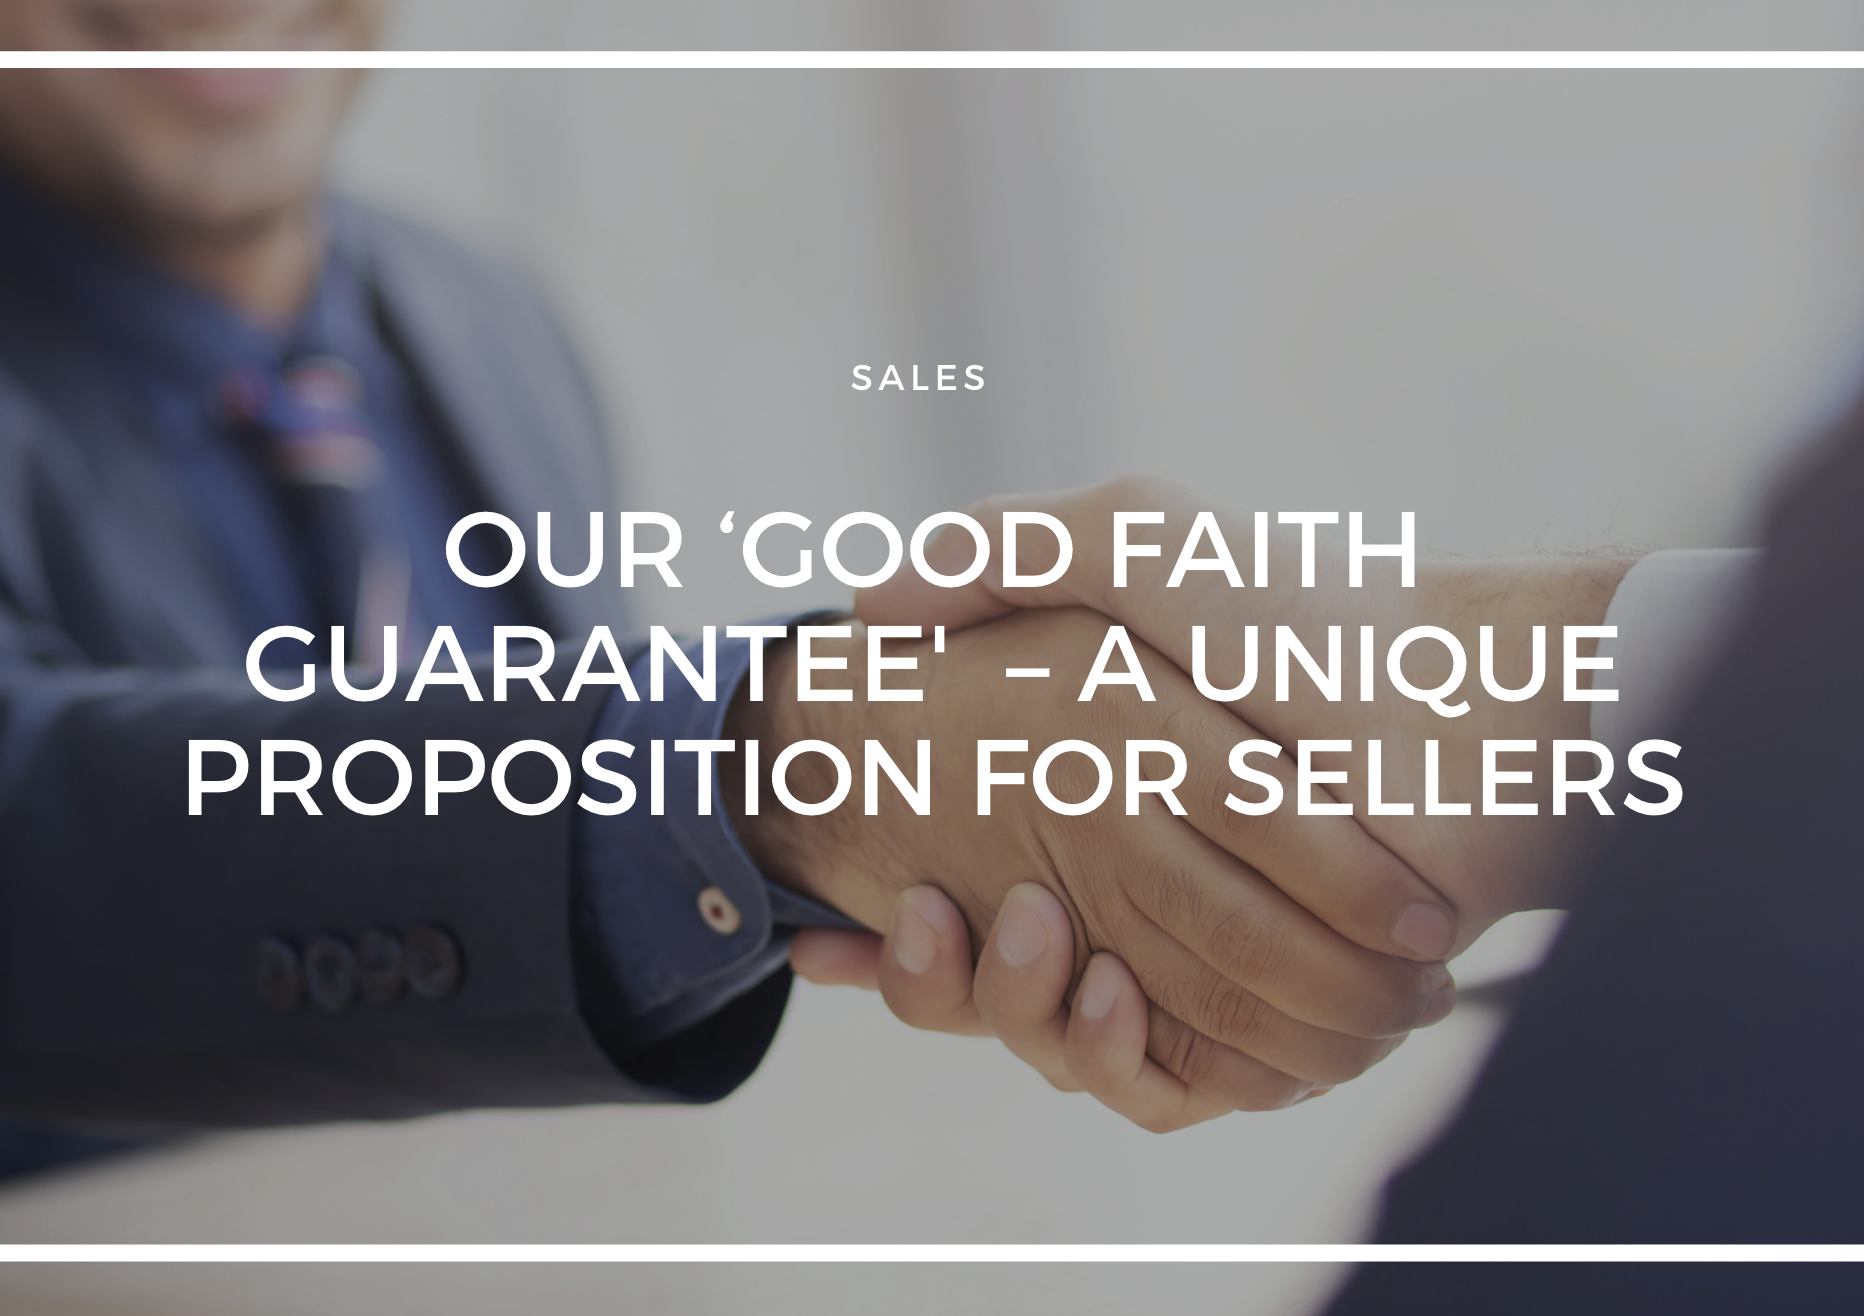 OUR 'GOOD FAITH GUARANTEE' – A UNIQUE PROPOSITION FOR SELLERS